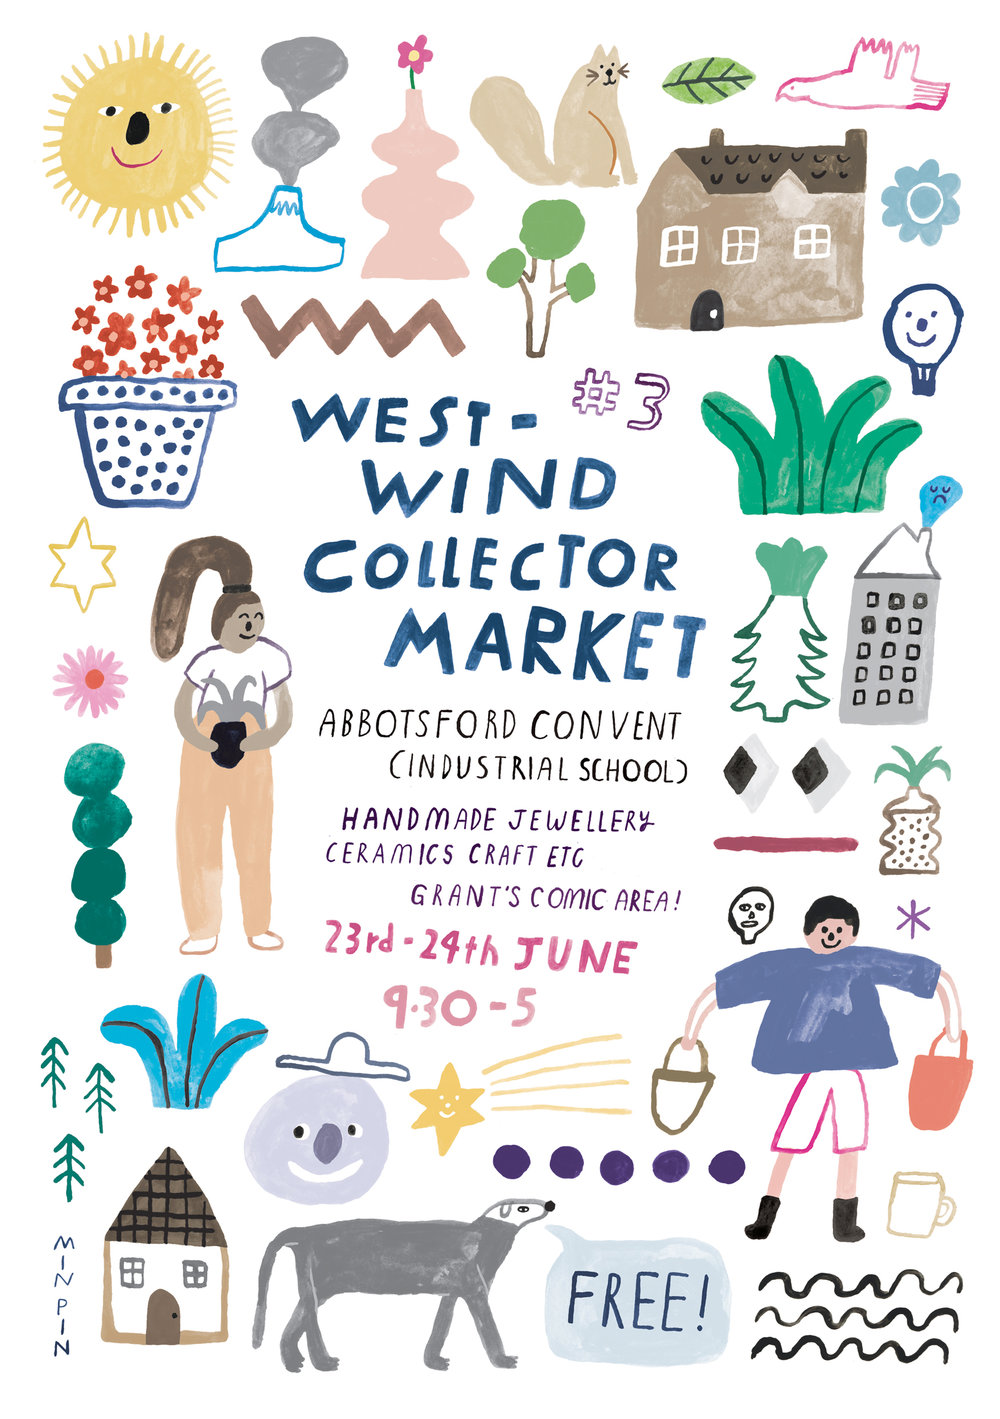 OFF TO MARKET 2018 for West Wind Collector Market